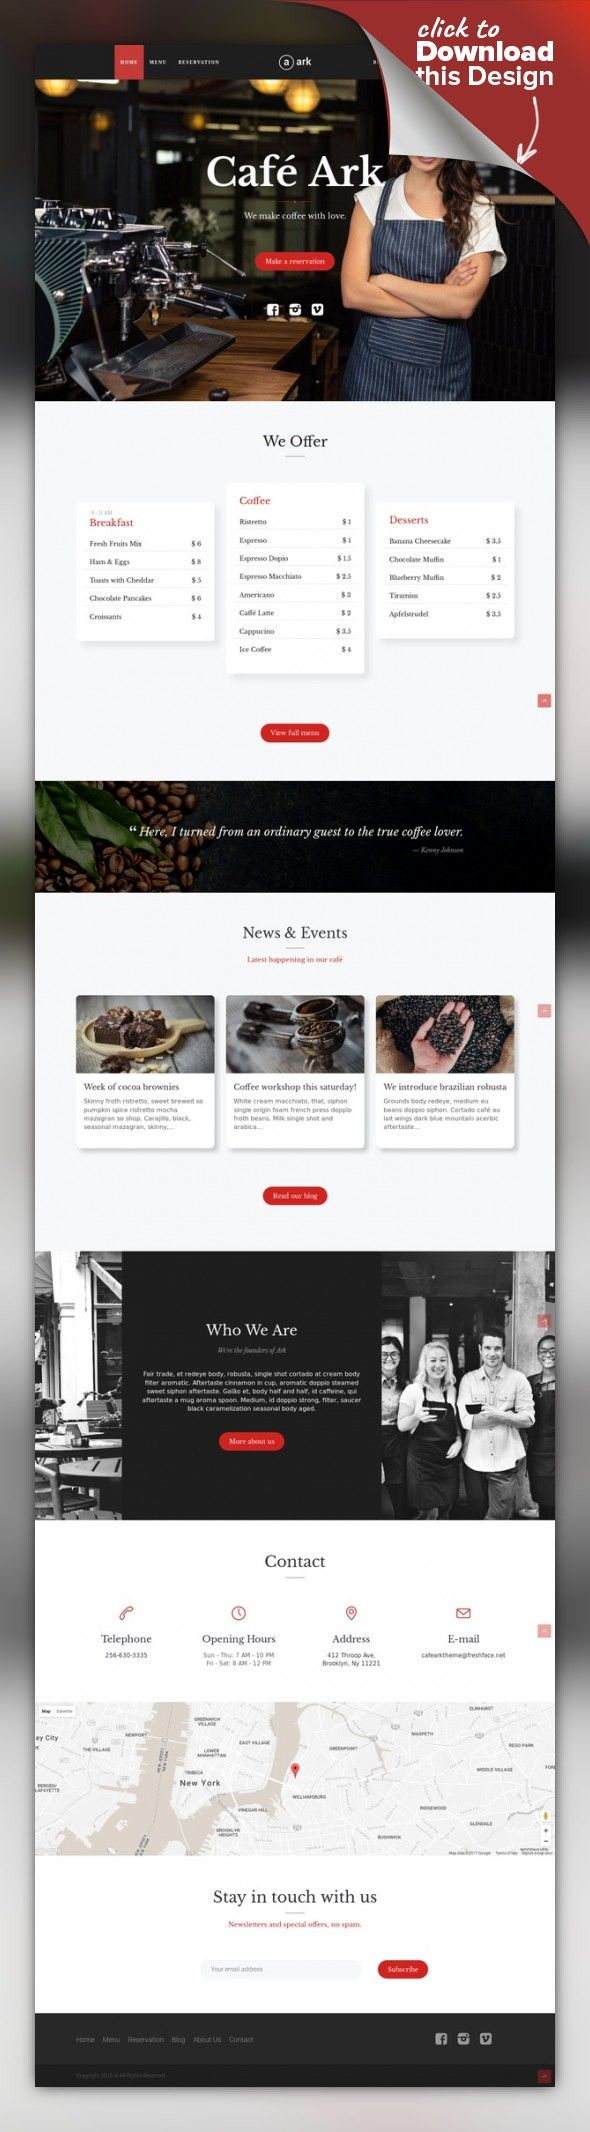 The Ark | WordPress Theme made for Freelancers agency, blog, business, clean, corporate, creative, magazine, multipurpose, one page, page builder, parallax, photography, portfolio, responsive, woocommerce Agencies, Barbers, Gym, Fitness, Restaurants, Cafe, Church, Photography and Photographers, Bistro, Construction, Parallax Effects, Movies, Videos, Woo Commerce stores, Fashion, Blogs, Portfolio, Actors, Dentist, Law, Lawyers, Me...